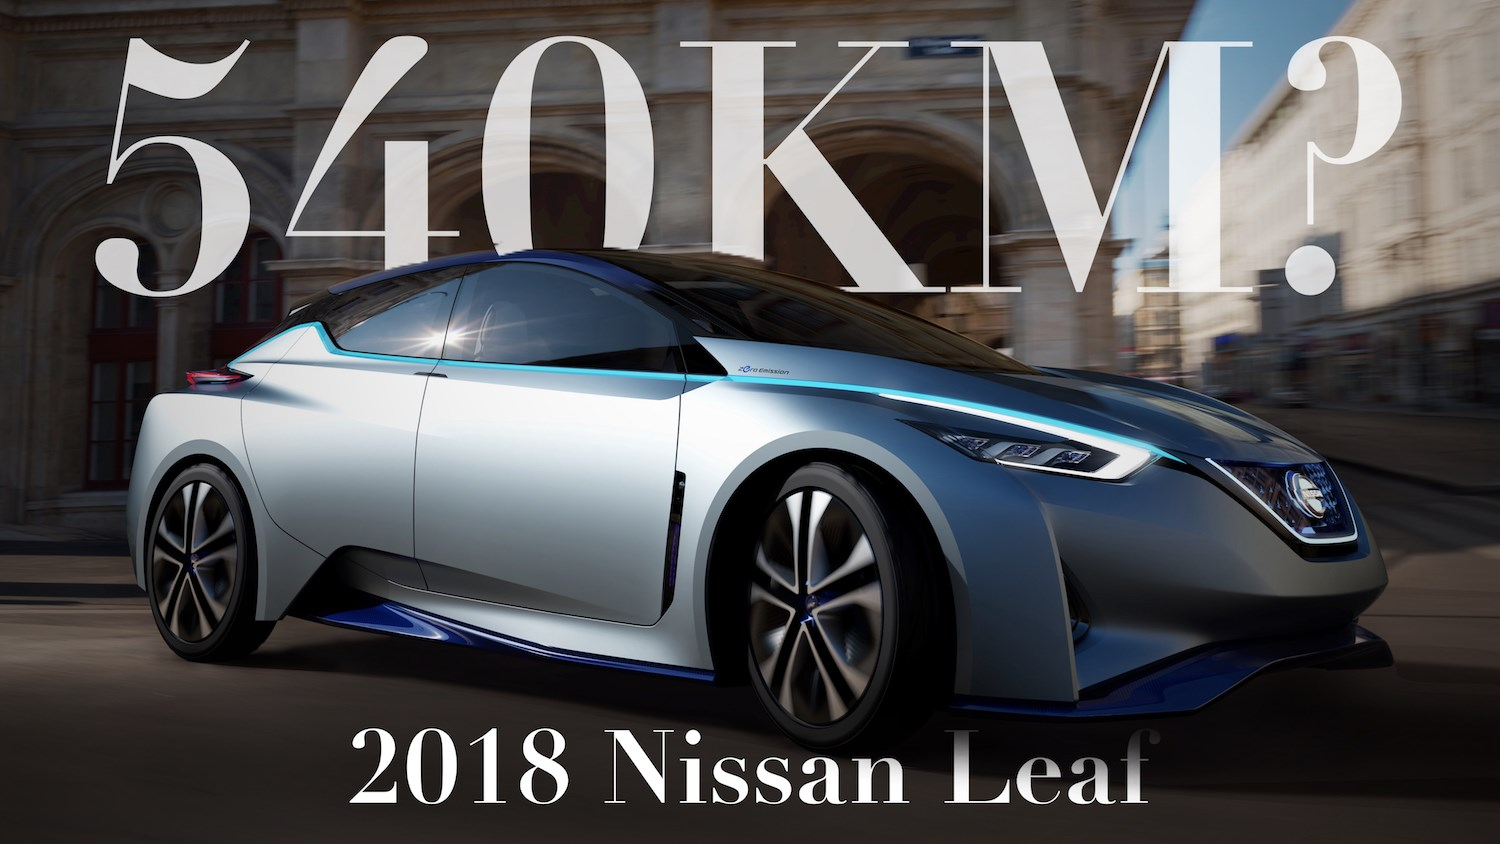 Next Nissan Leaf May Debut With 540km Max Range